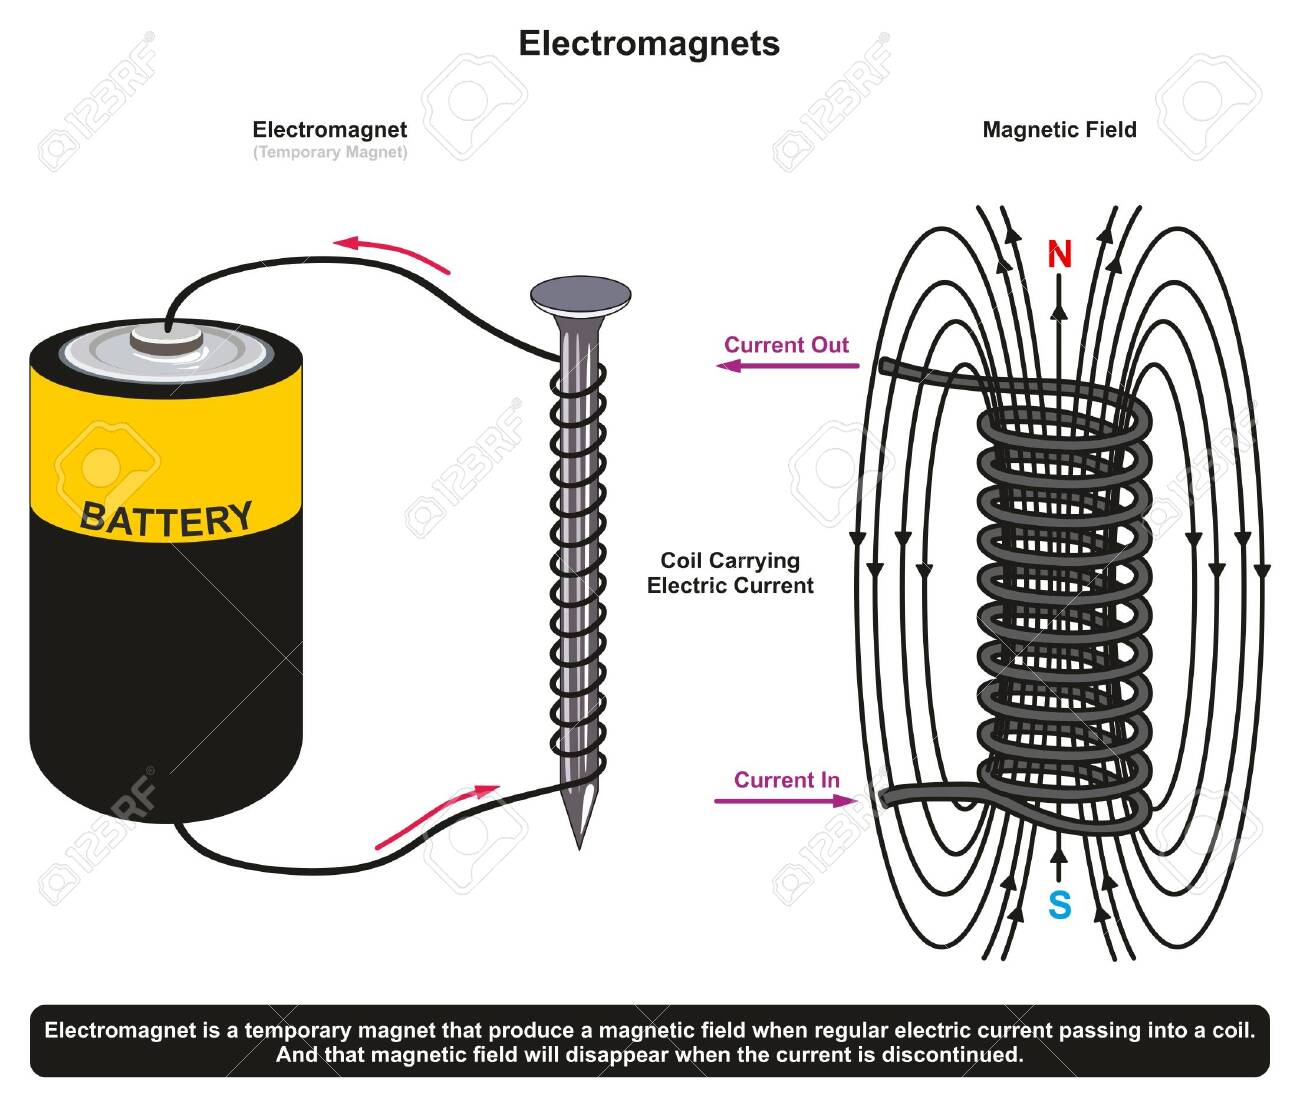 Sticking Power of Simple Electromagnet Example showing a nail surrounded by coil and connected to dry battery cell producing electromagnetic field for physics science education - 130475916